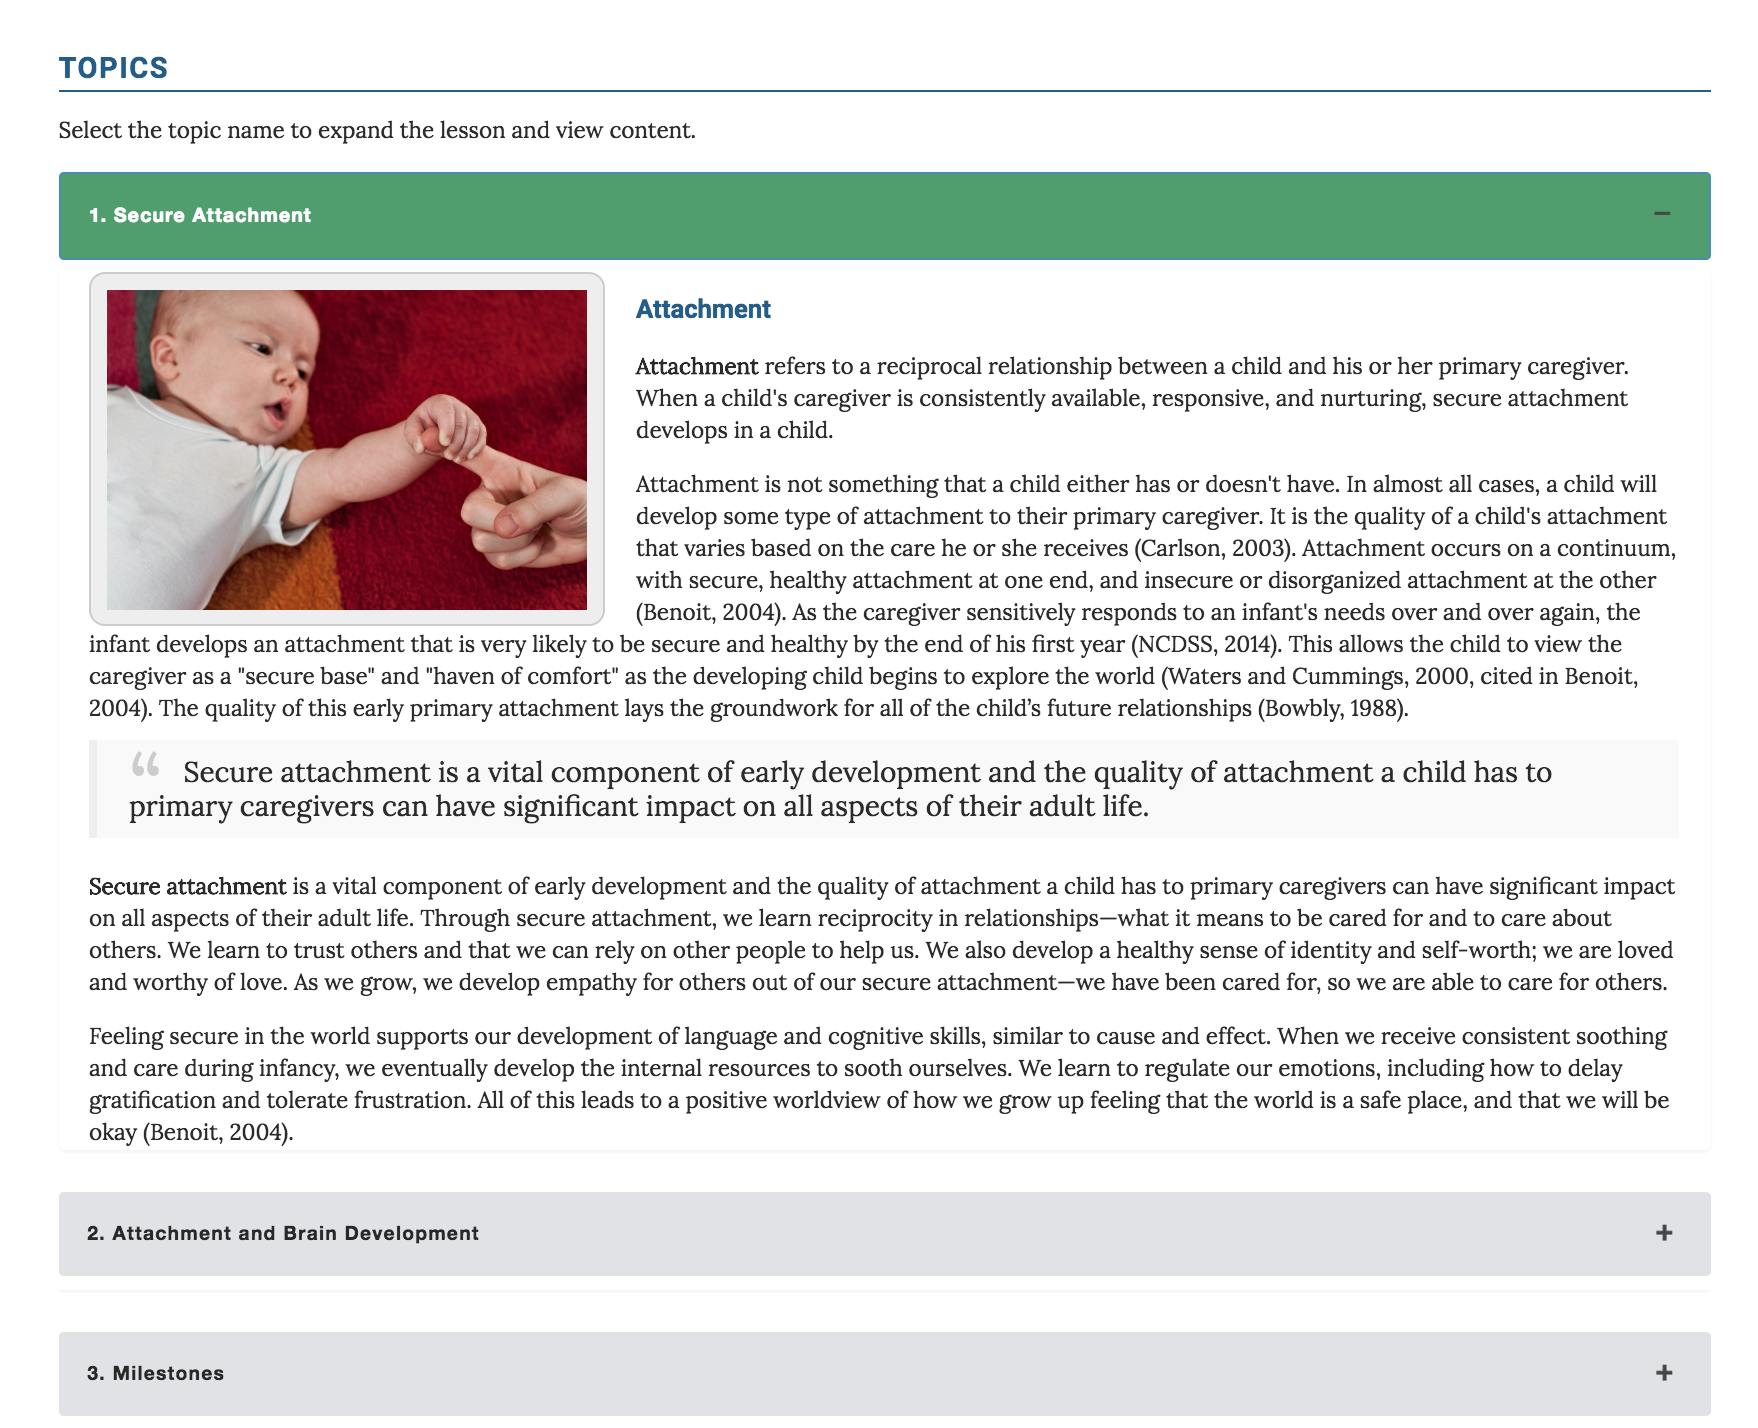 Screenshot of New Course with Expandable Topic Sections